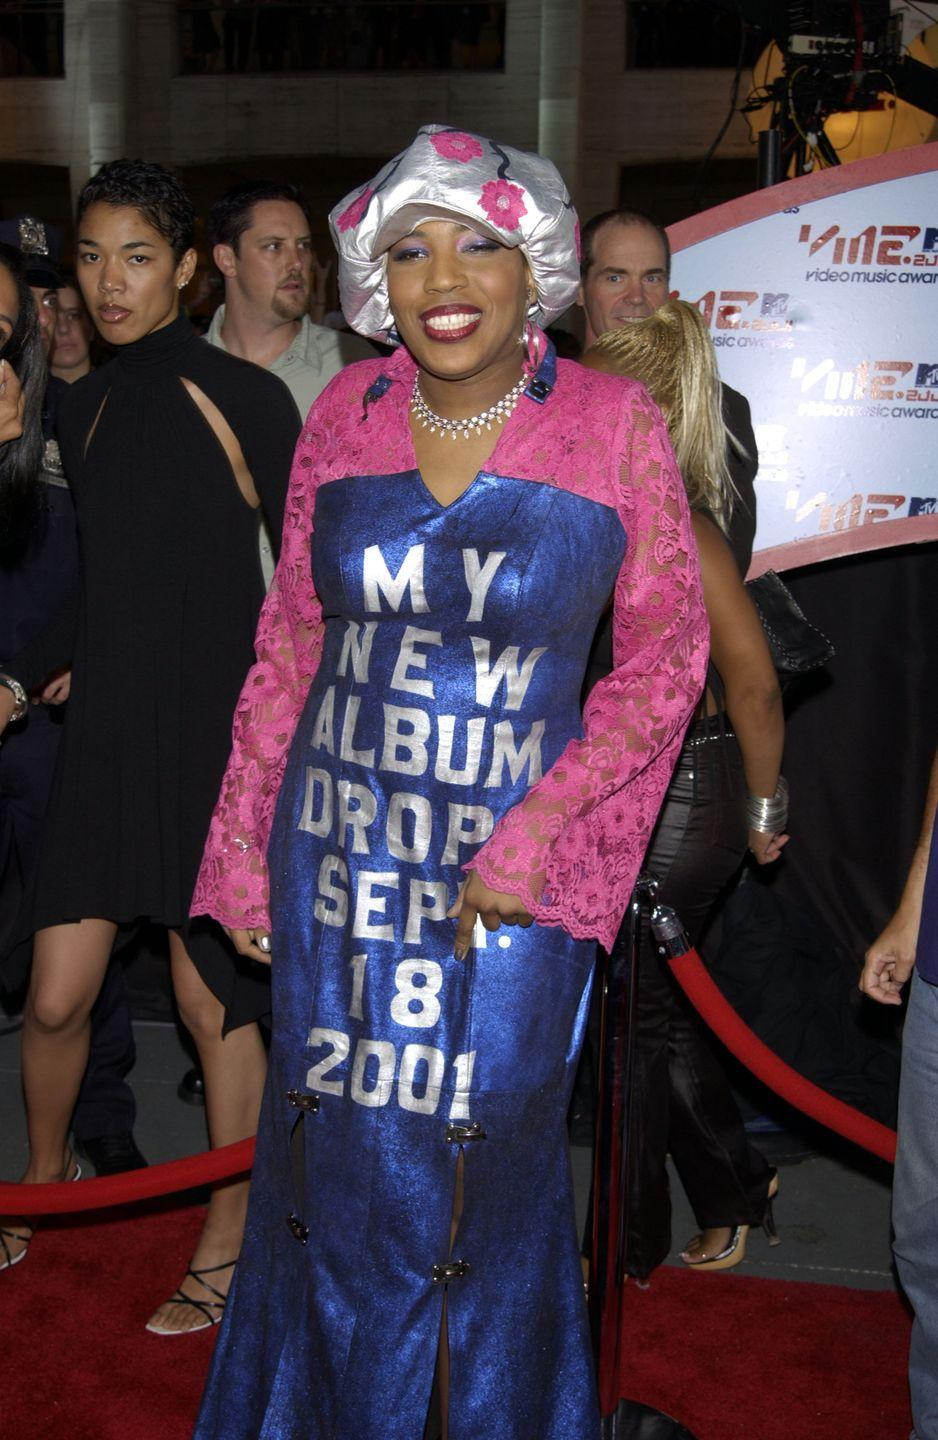 """<p>Macy Gray used the 2001 VMAs to promote her upcoming album in a very literal way. One <a href=""""http://www.mtv.com/news/2292542/vma-wtf-wednesday-macy-gray-sent-a-subtle-marketing-message-at-the-2001-vmas/"""" rel=""""nofollow noopener"""" target=""""_blank"""" data-ylk=""""slk:writer for MTV.com"""" class=""""link rapid-noclick-resp"""">writer for MTV.com</a> said of the ensemble, """"She looks like a Jo-Ann Fabrics (or Mood, for those of you <em>Project Runway</em> fans out there) threw up all over her, and then she held the whole mess together with industrial-strength paper clips."""" Yikes. </p>"""